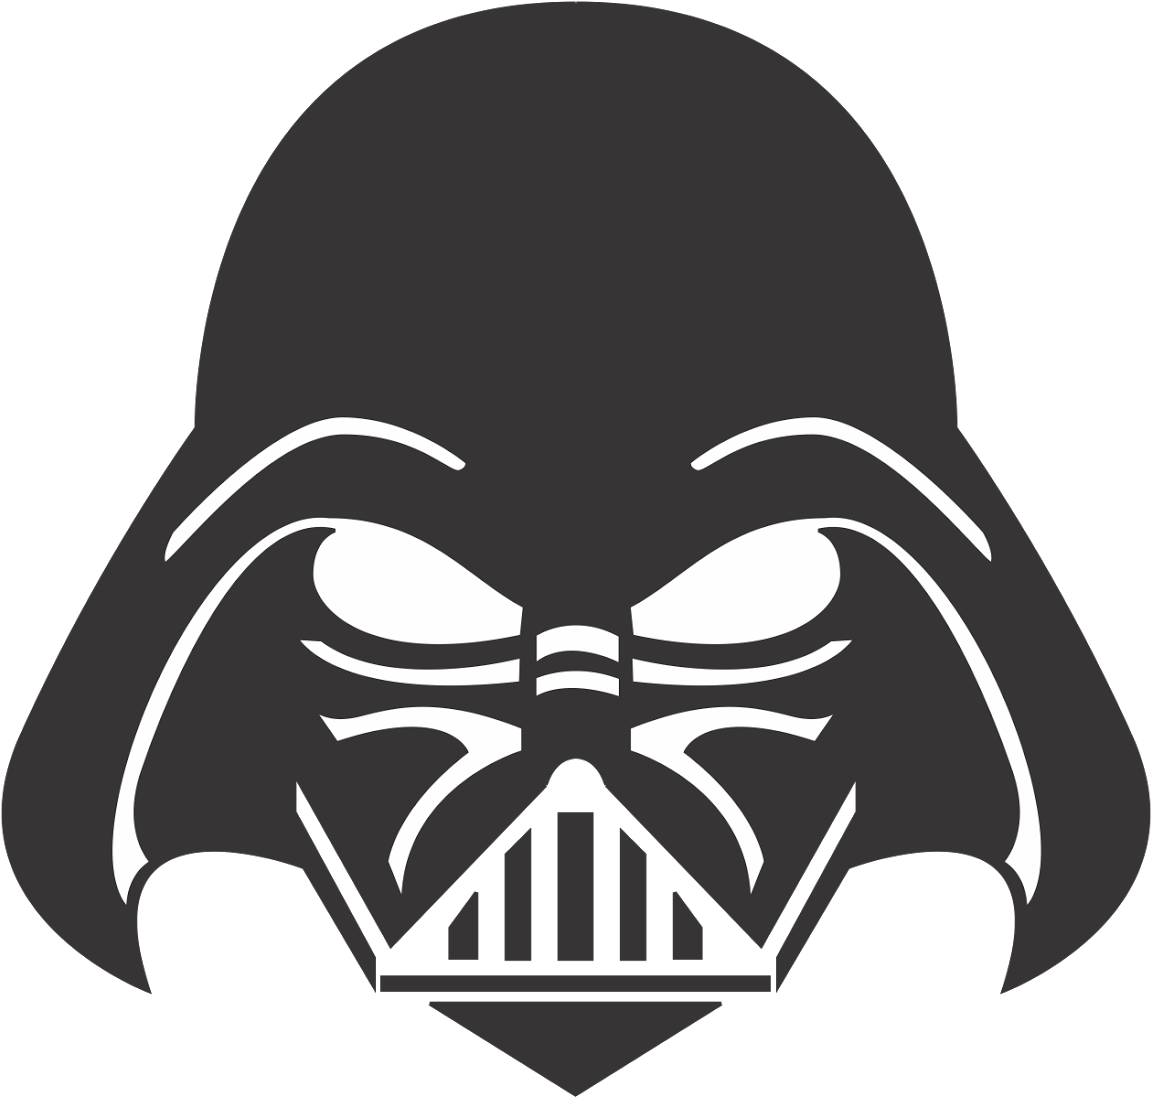 Darth vader clipart silhouette. Download face png transparent